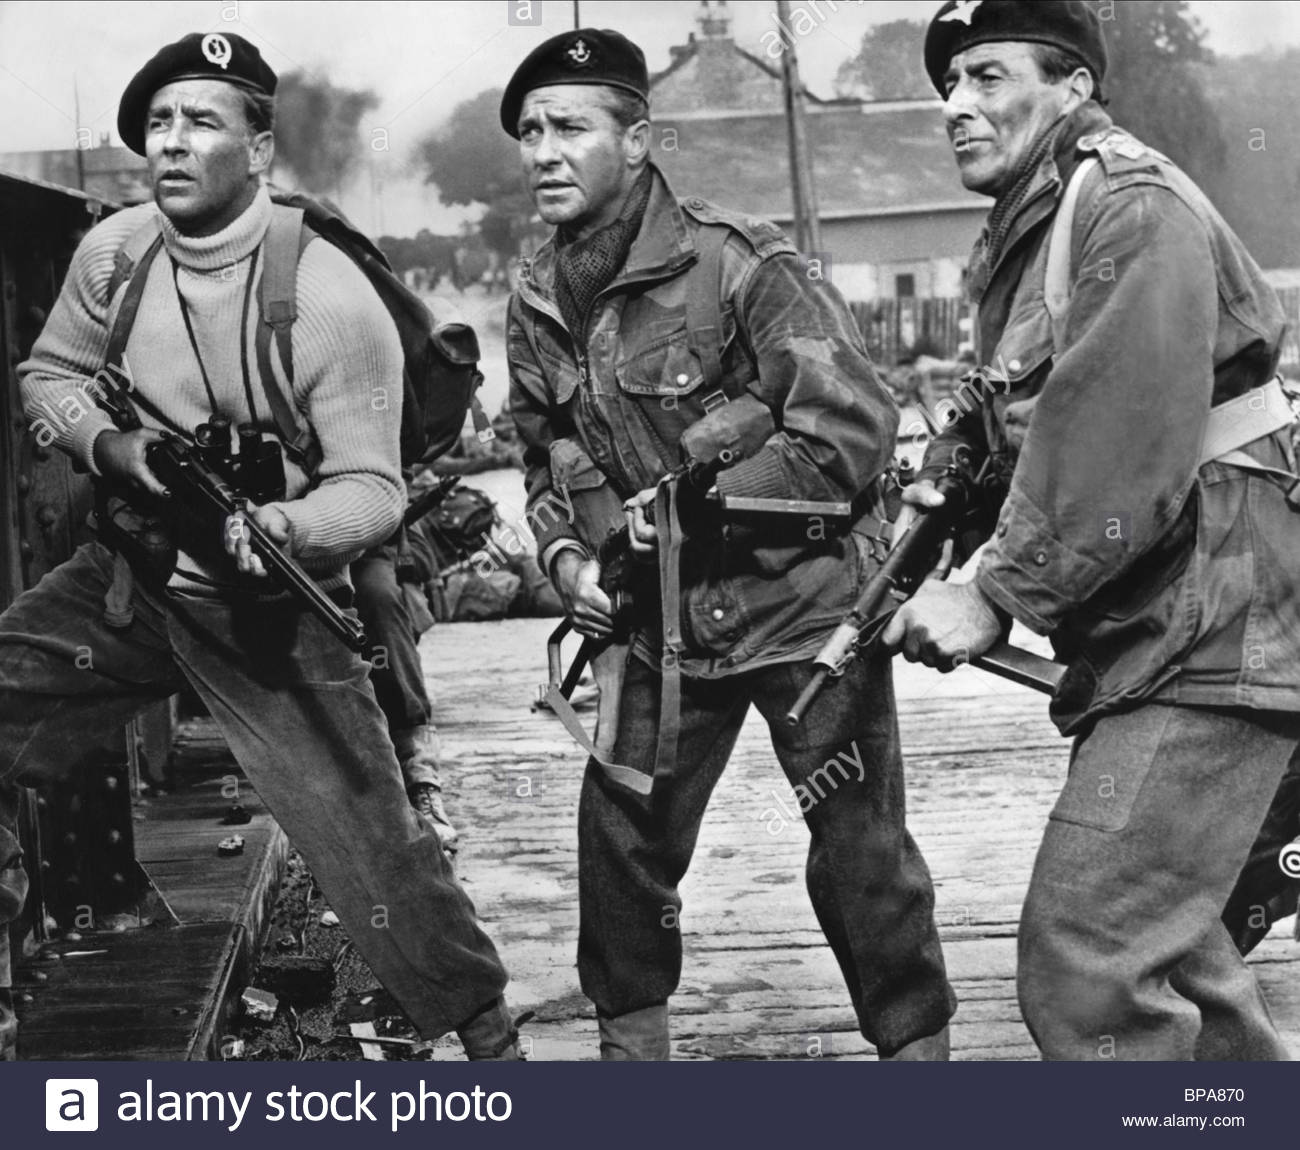 PETER LAWFORD, RICHARD TODD, THE LONGEST DAY, 1962 Stock